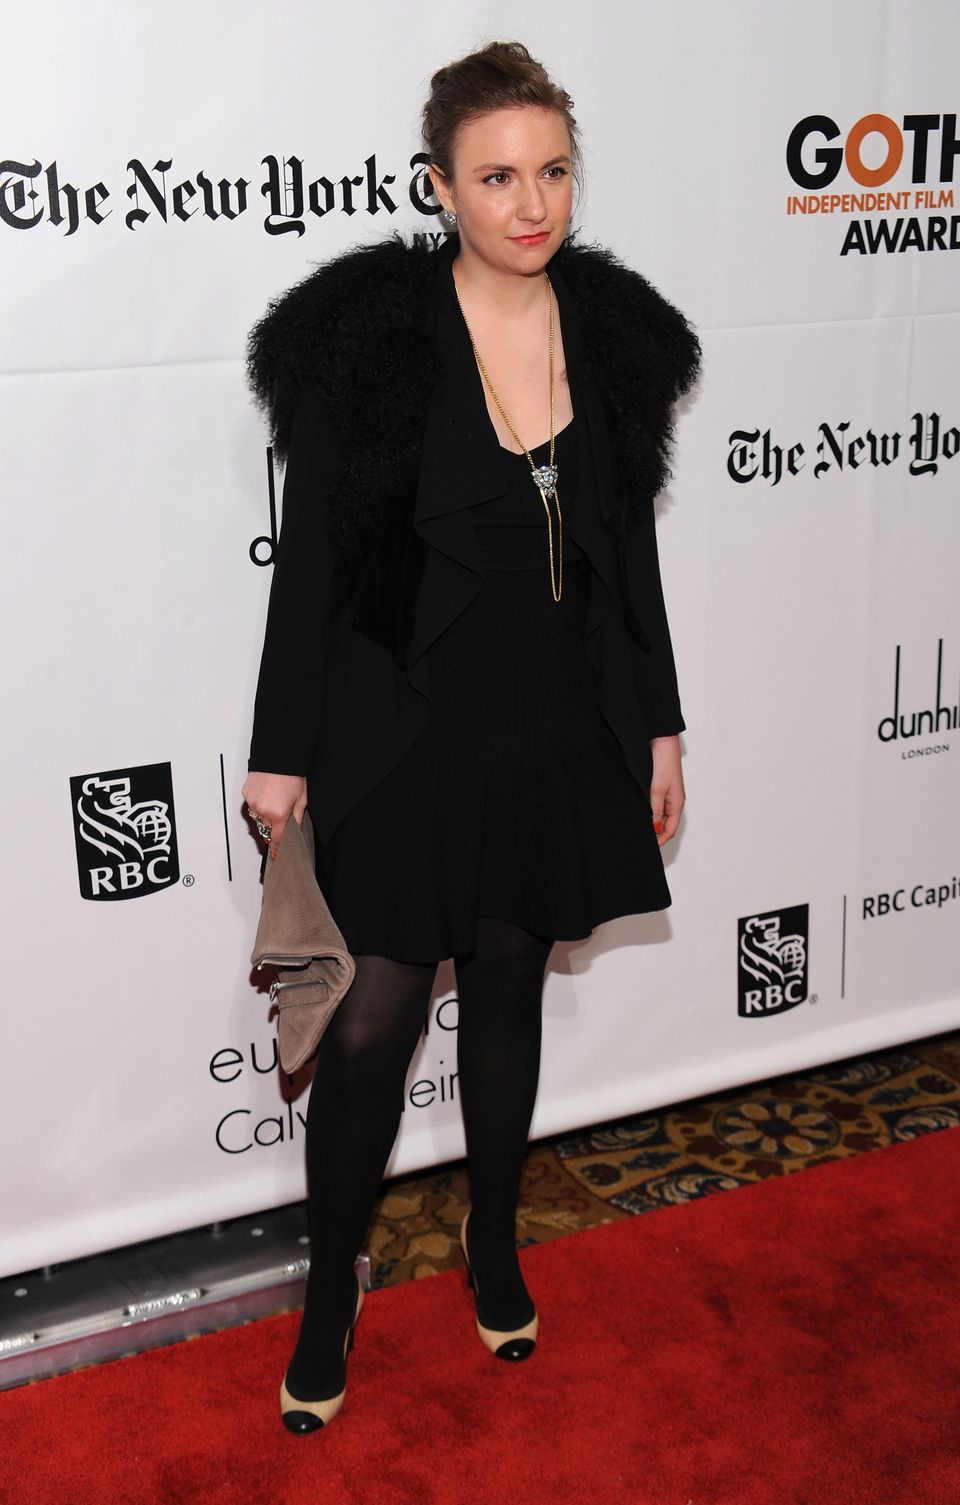 Director Lena Dunham attends IFP's 20th Annual Gotham Independent Film Awards at Cipriani, Wall Street on November 29, 2010 i